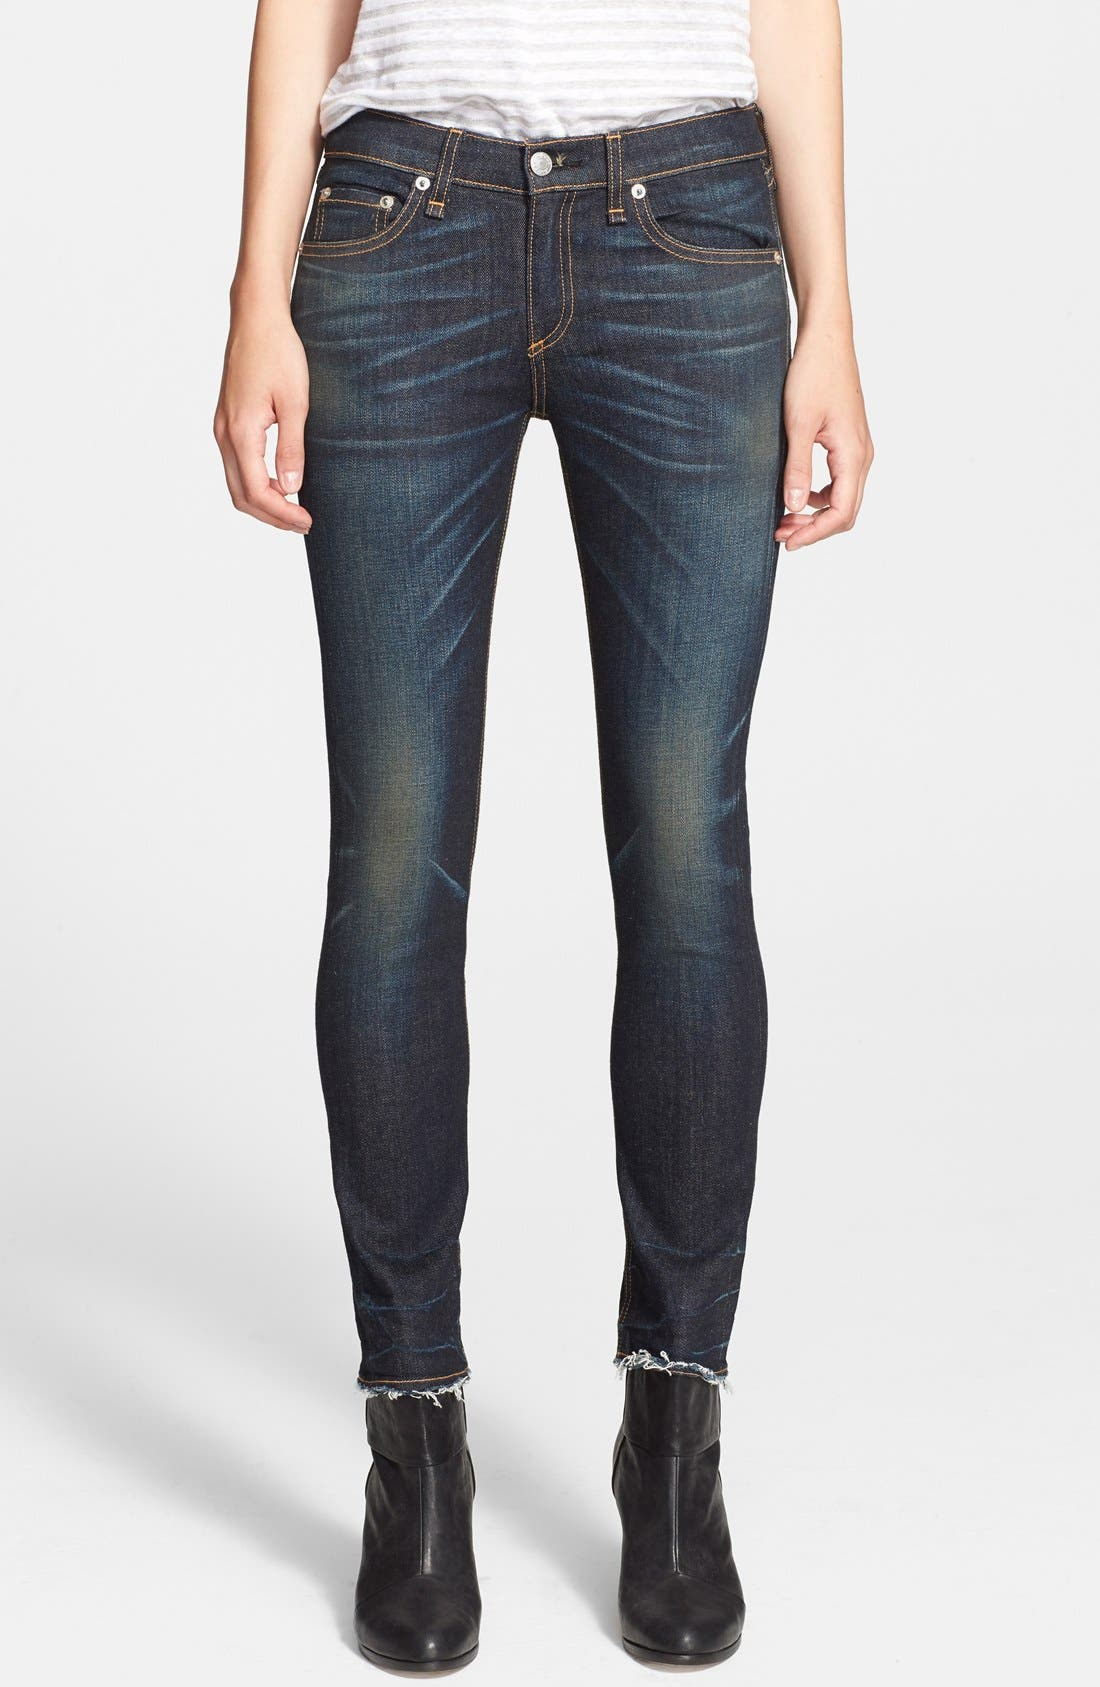 JEAN 'The Crop' Skinny Jeans,                             Main thumbnail 1, color,                             401